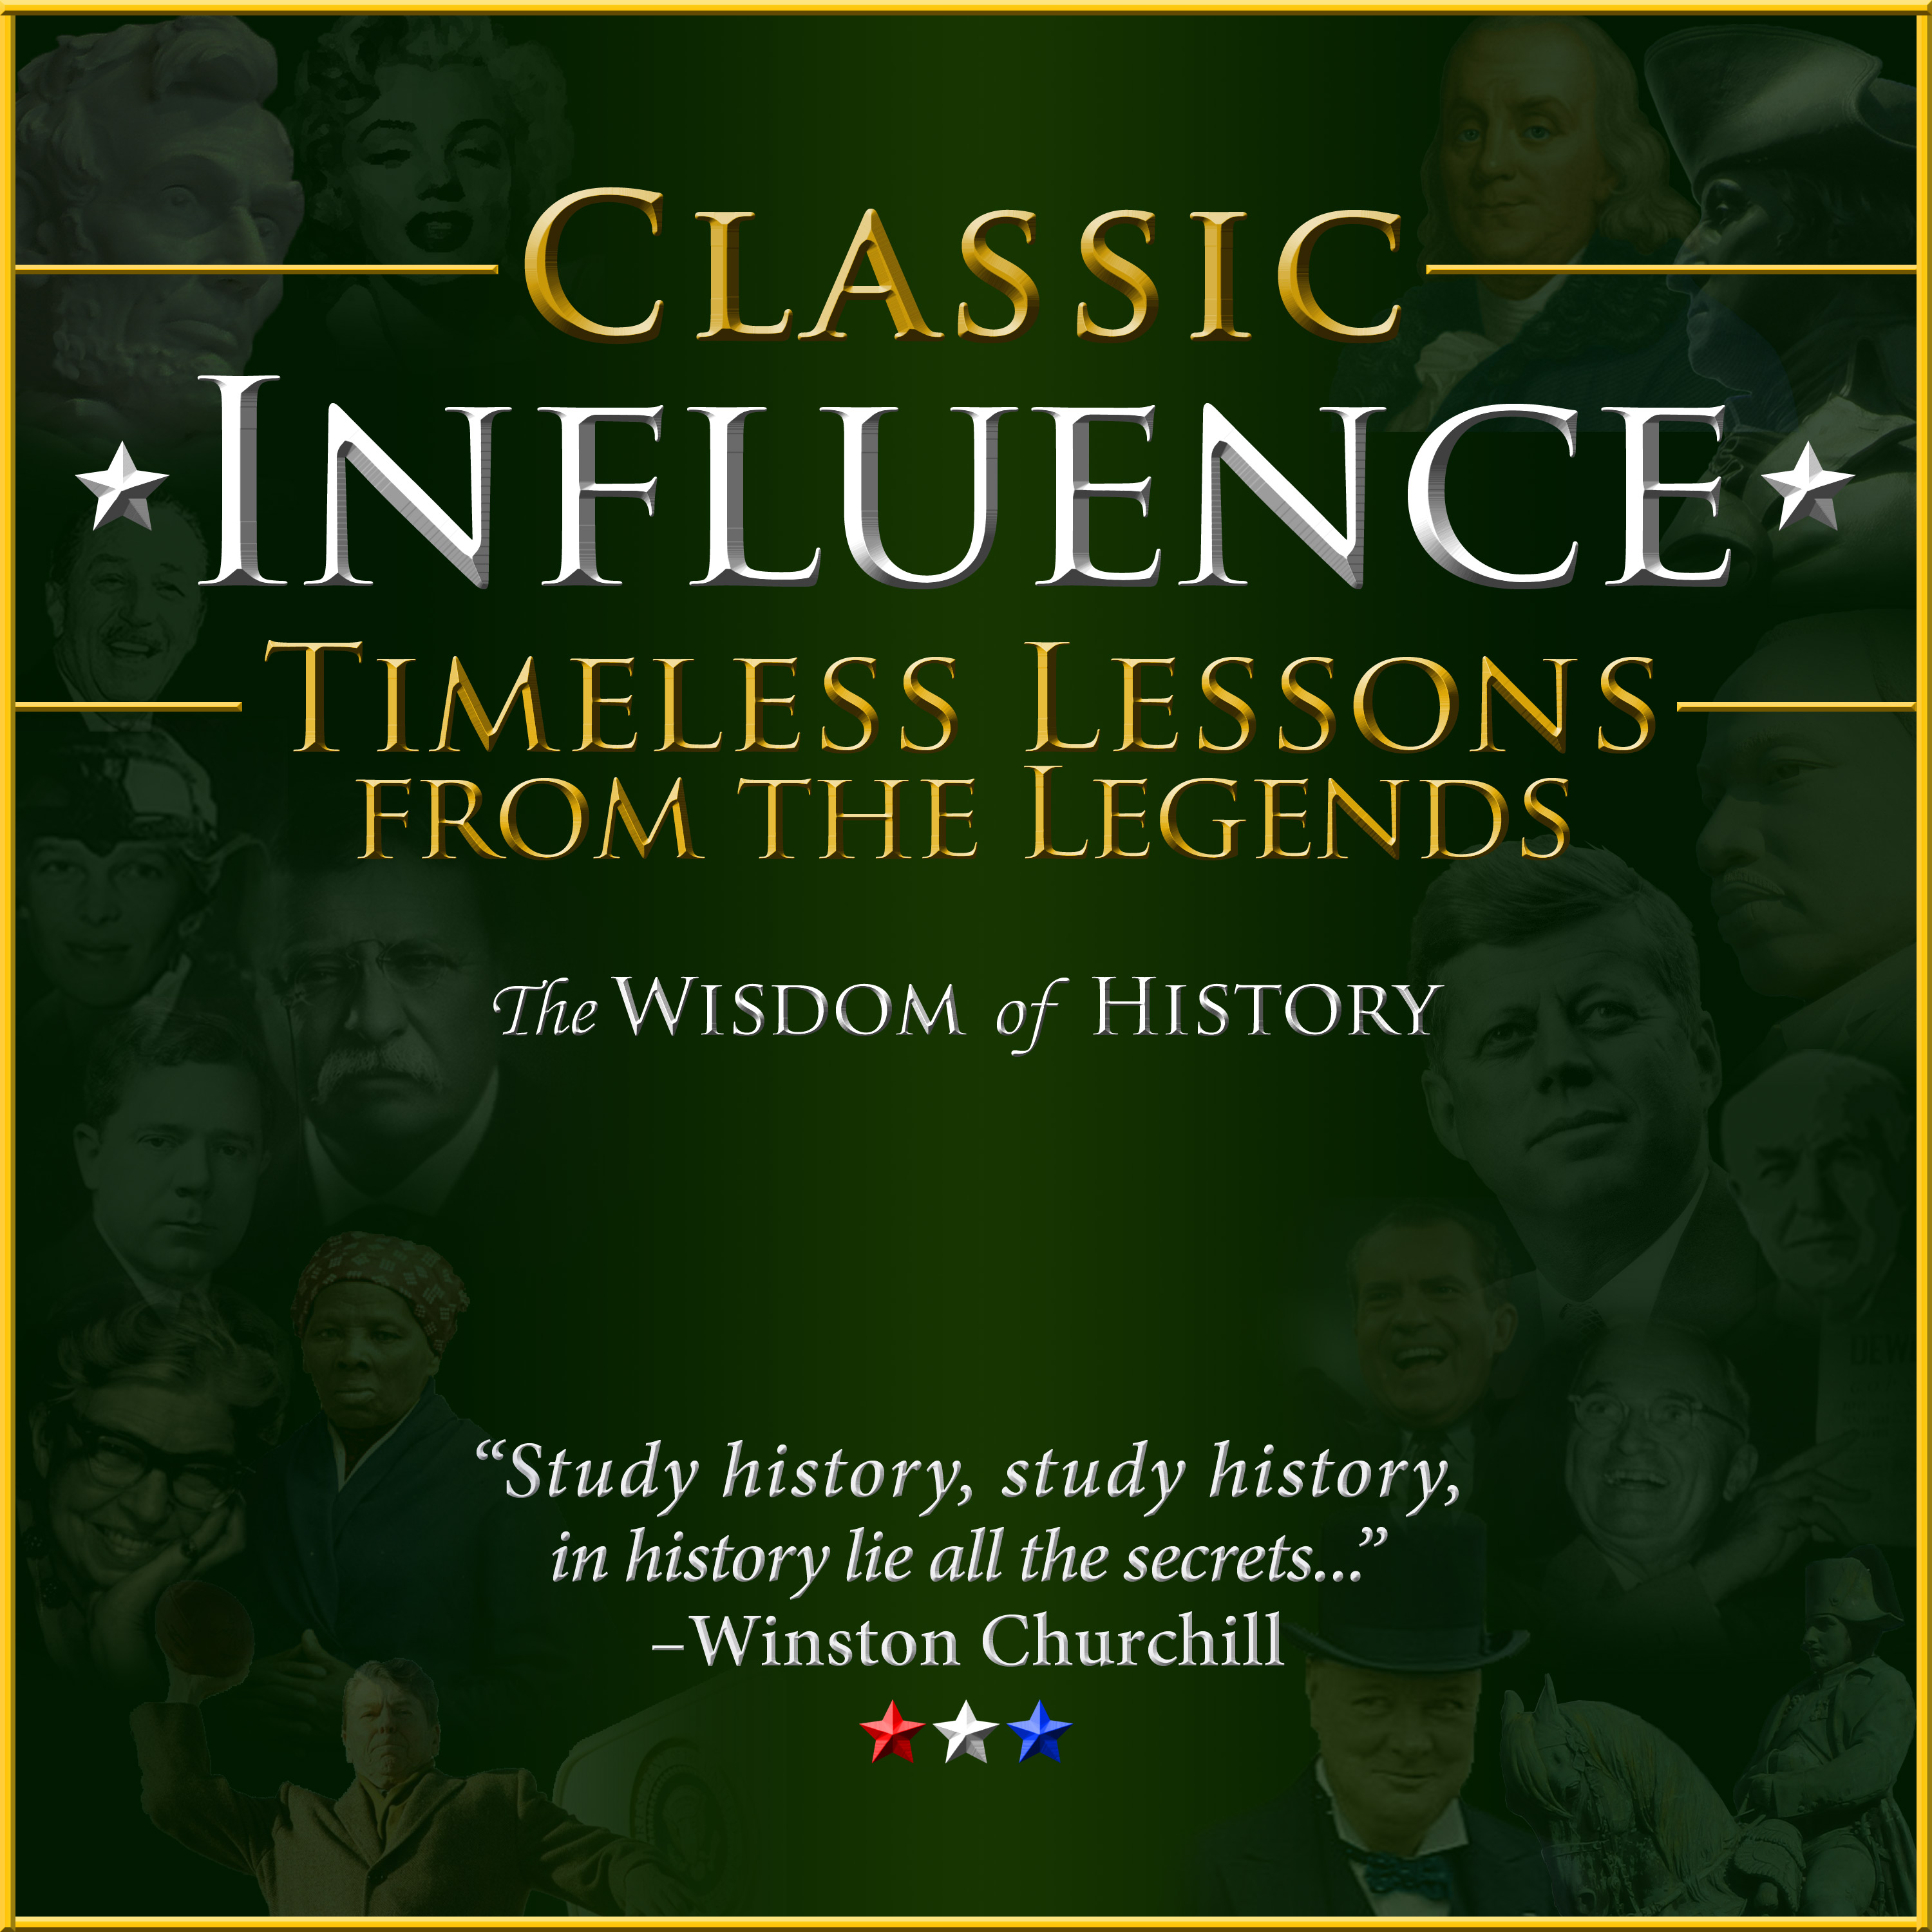 Classic Influence Podcast: Timeless Lessons from the Legends show art